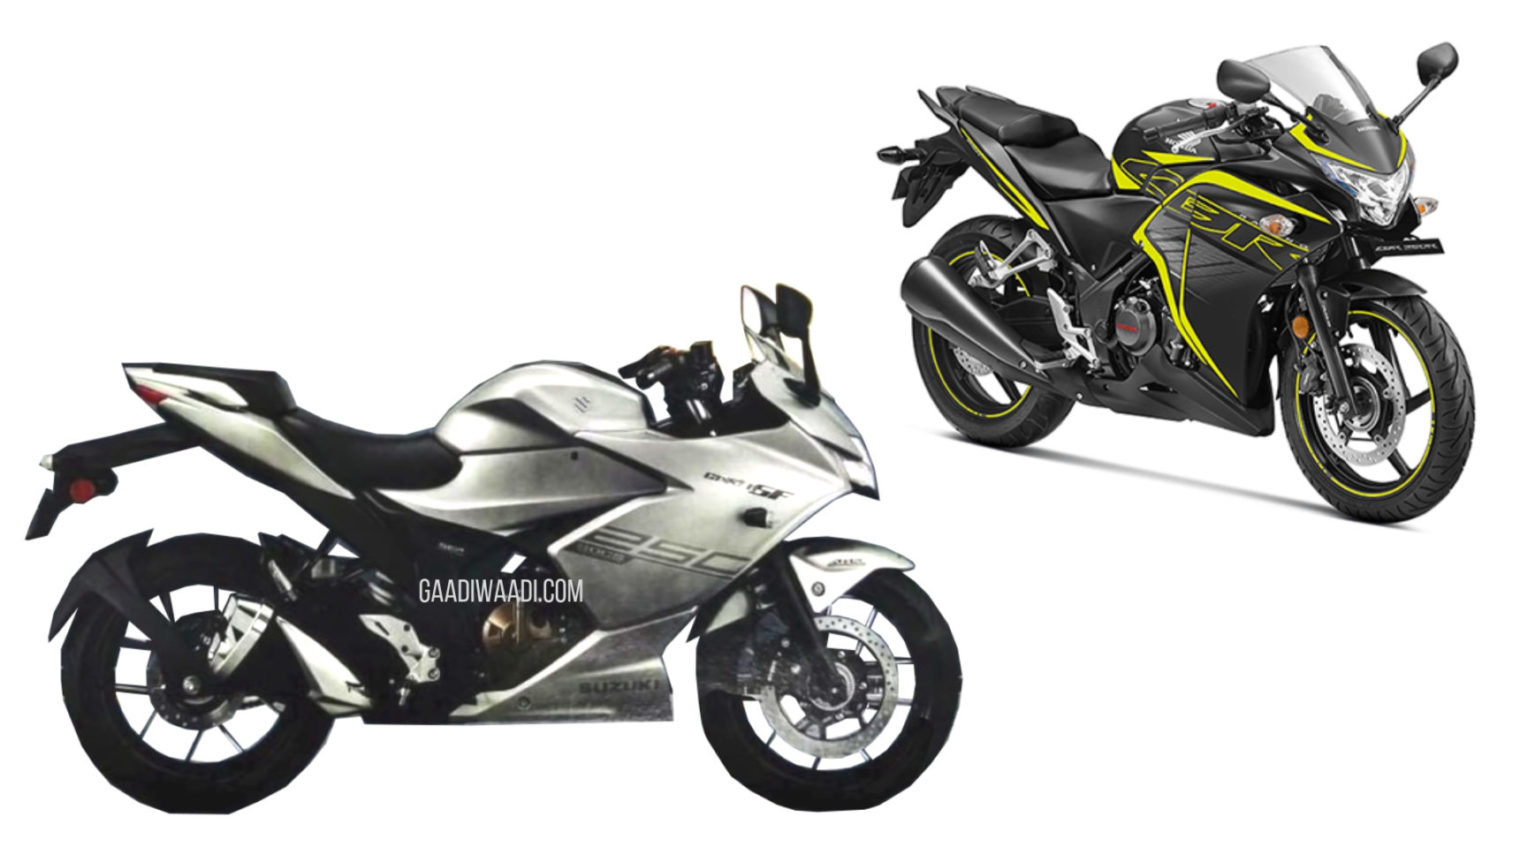 suzuki gixxer sf 250 vs honda cbr 250r specs comparison. Black Bedroom Furniture Sets. Home Design Ideas